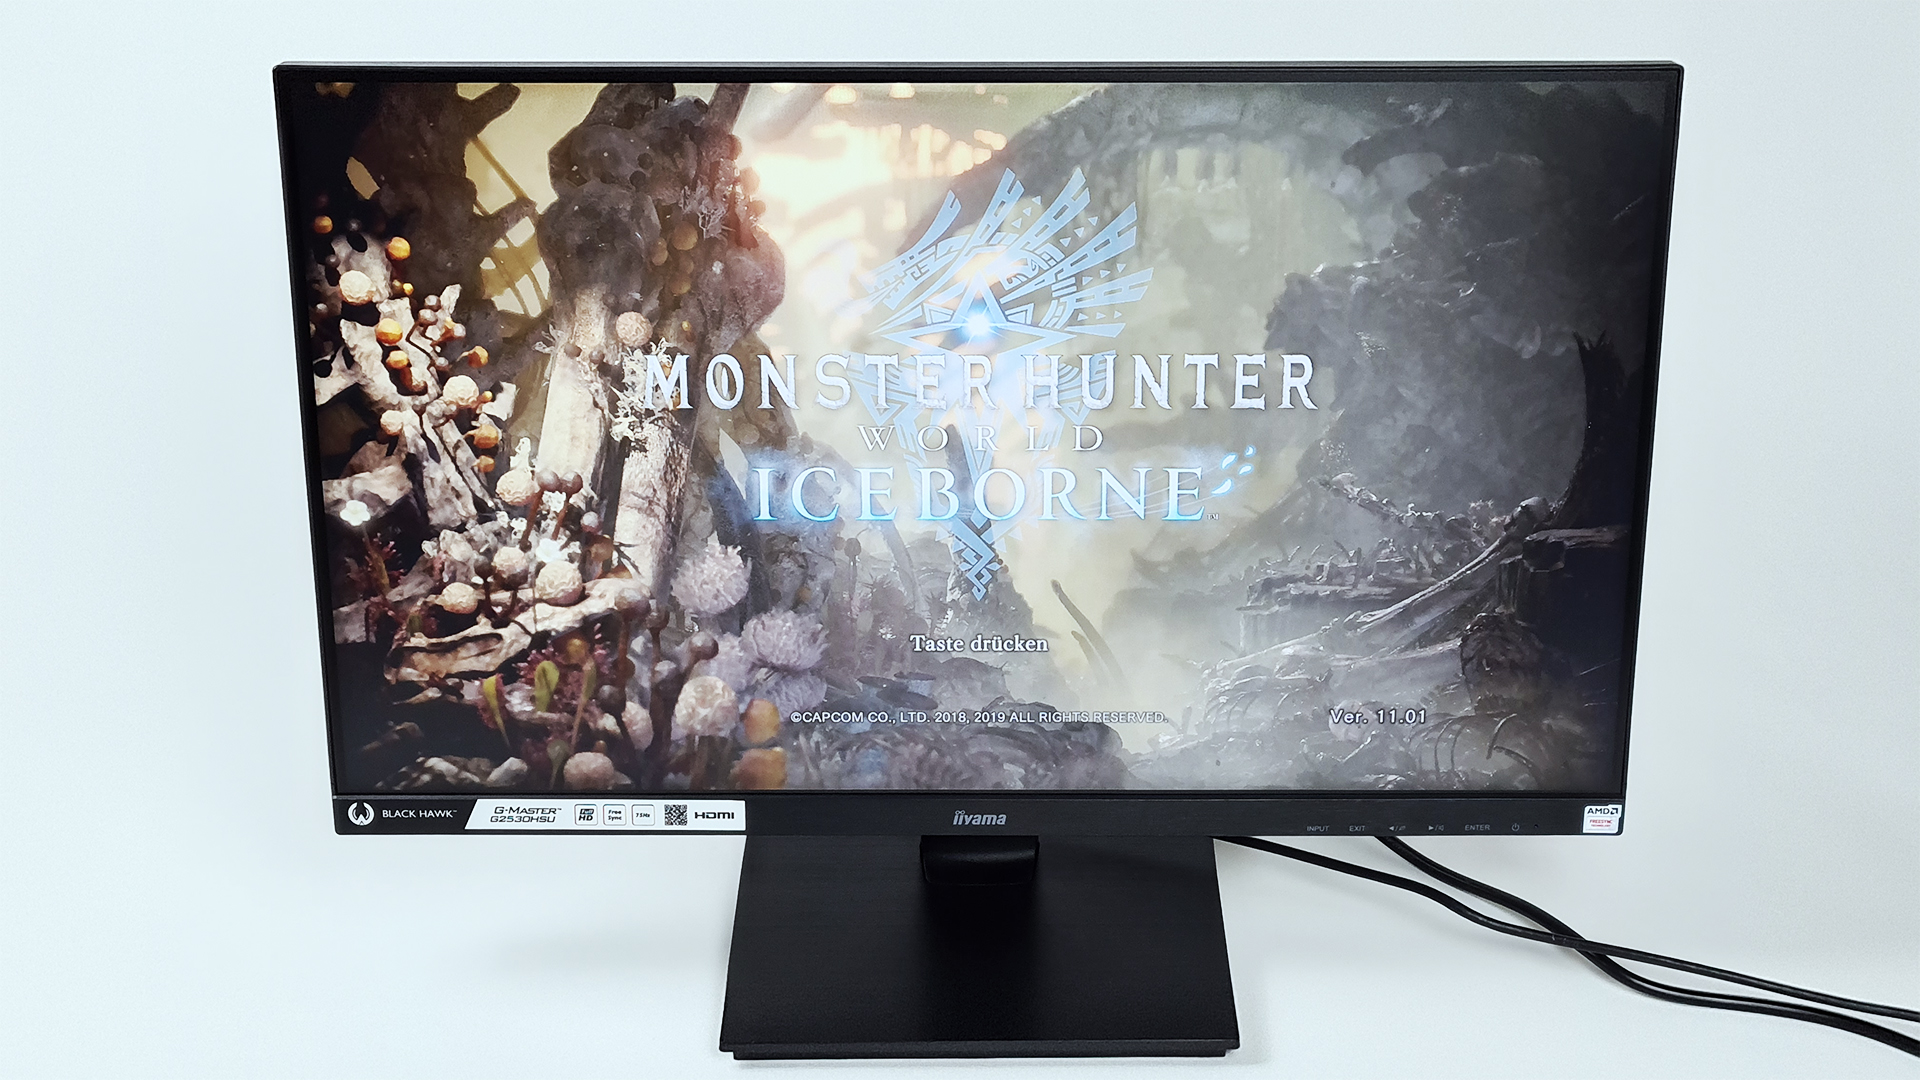 G-MASTER G2530HSU-B1 Black Hawk im Test auf der PS4 Pro und Monster Hunter World: Iceborne